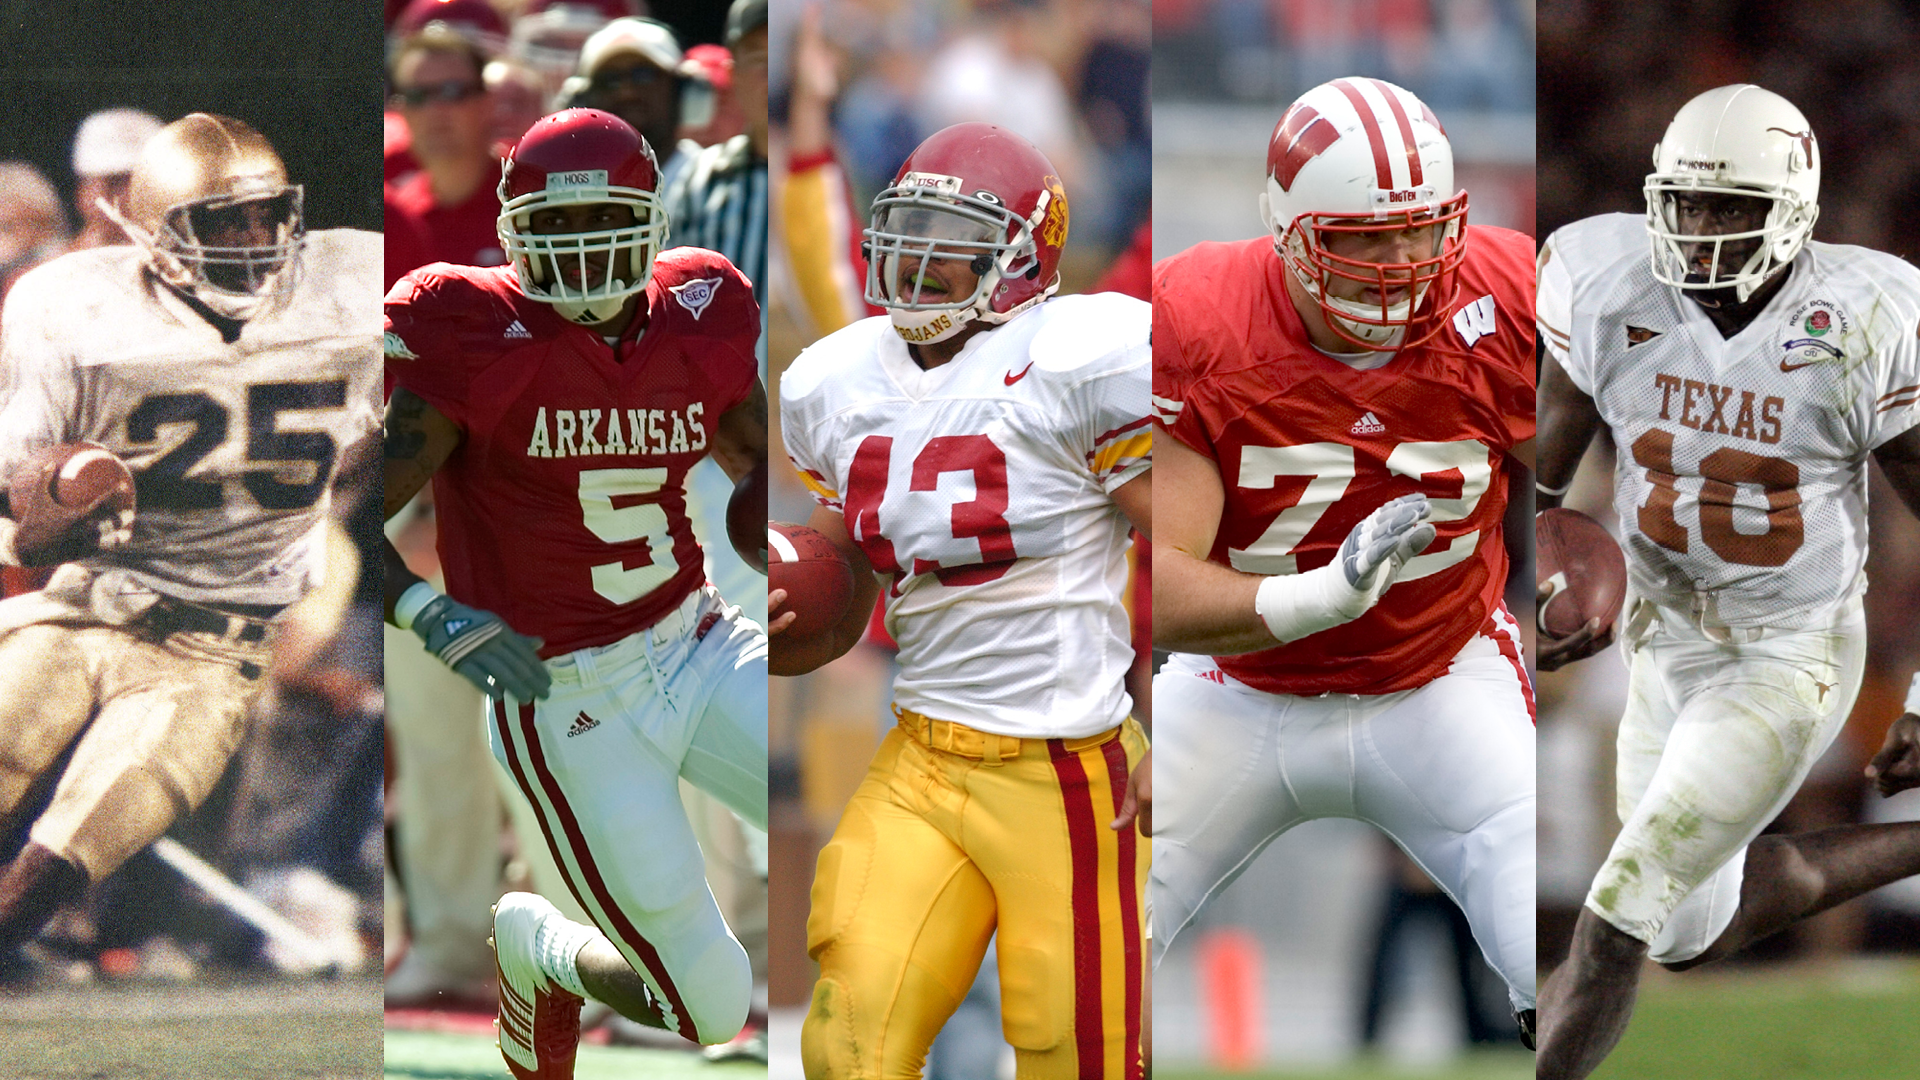 d5ce6822298 NFF Announces Legendary 2019 College Football Hall of Fame Class ...